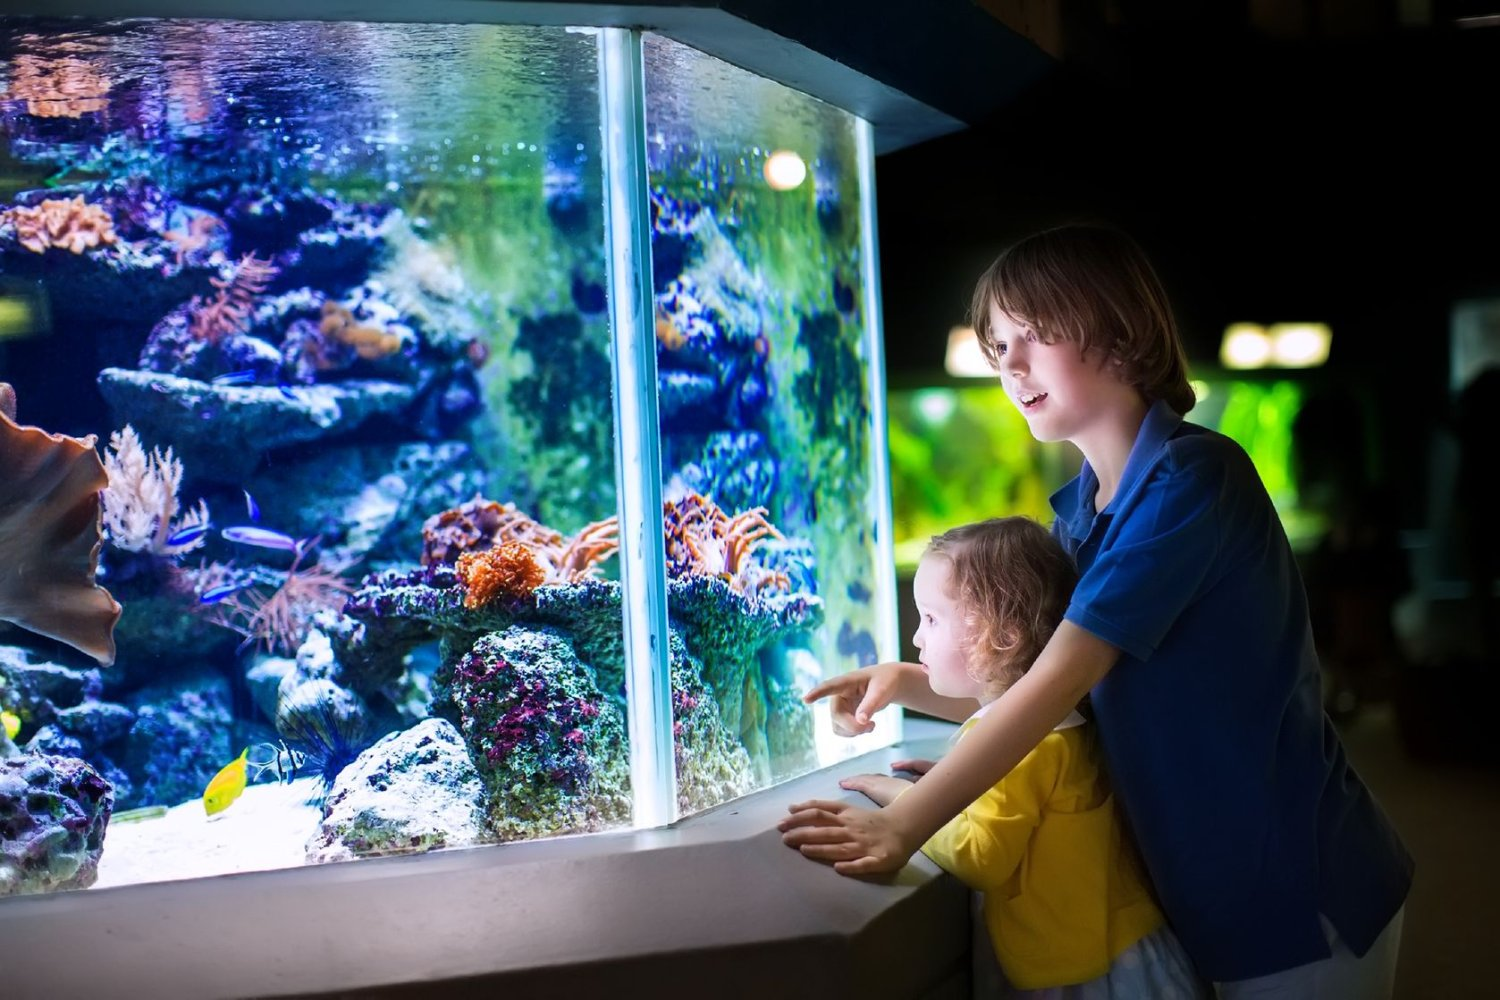 two kids watching their pet fish in the aquarium